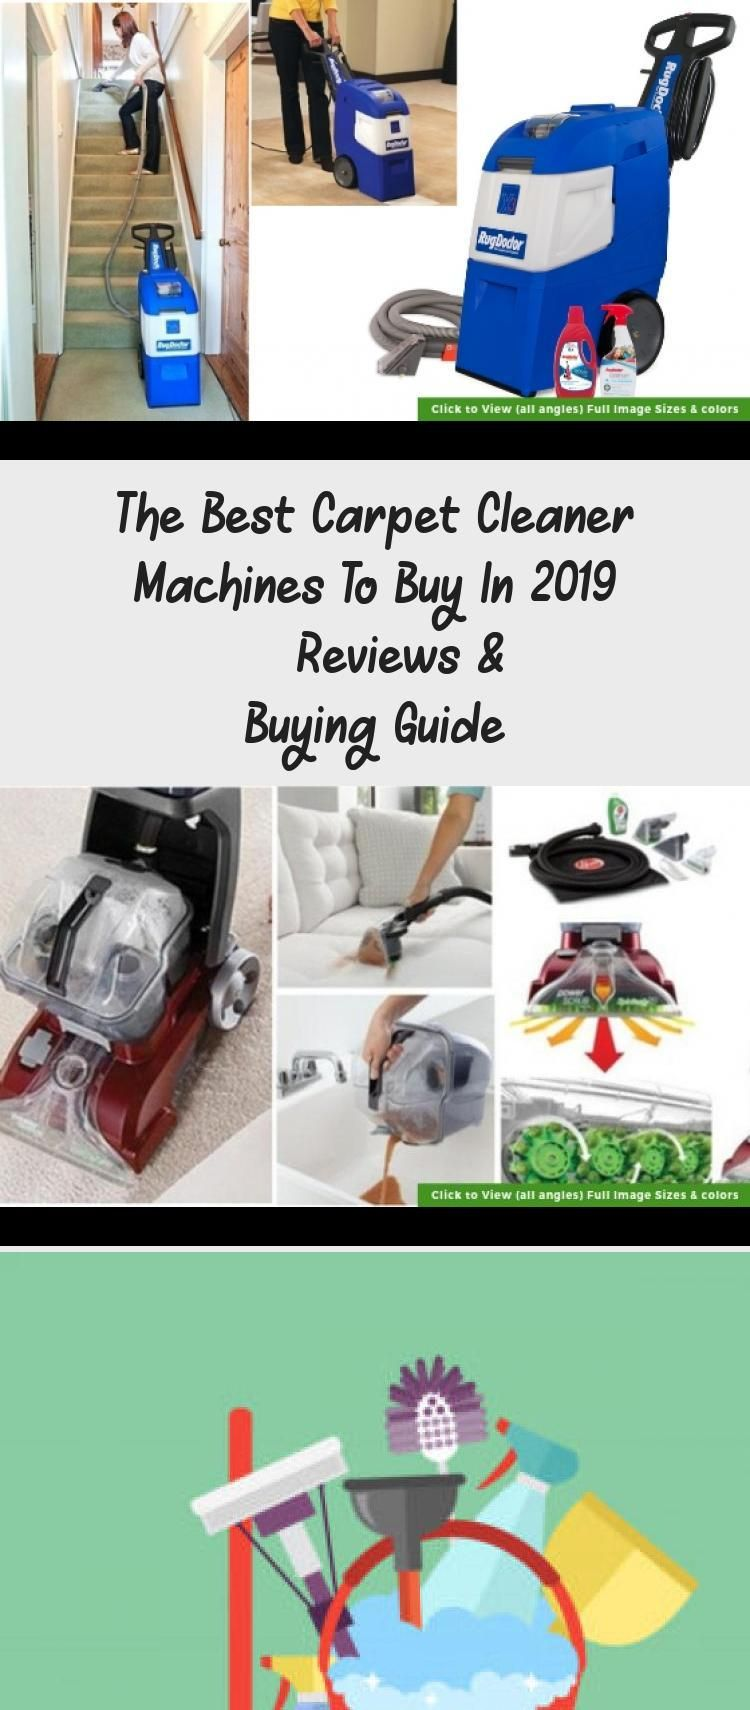 The Best Carpet Cleaner Machines To Buy In 2019 Reviews Buying Guide In 2020 Carpet Cleaners Diy Carpet Cleaner Carpet Steam Cleaner